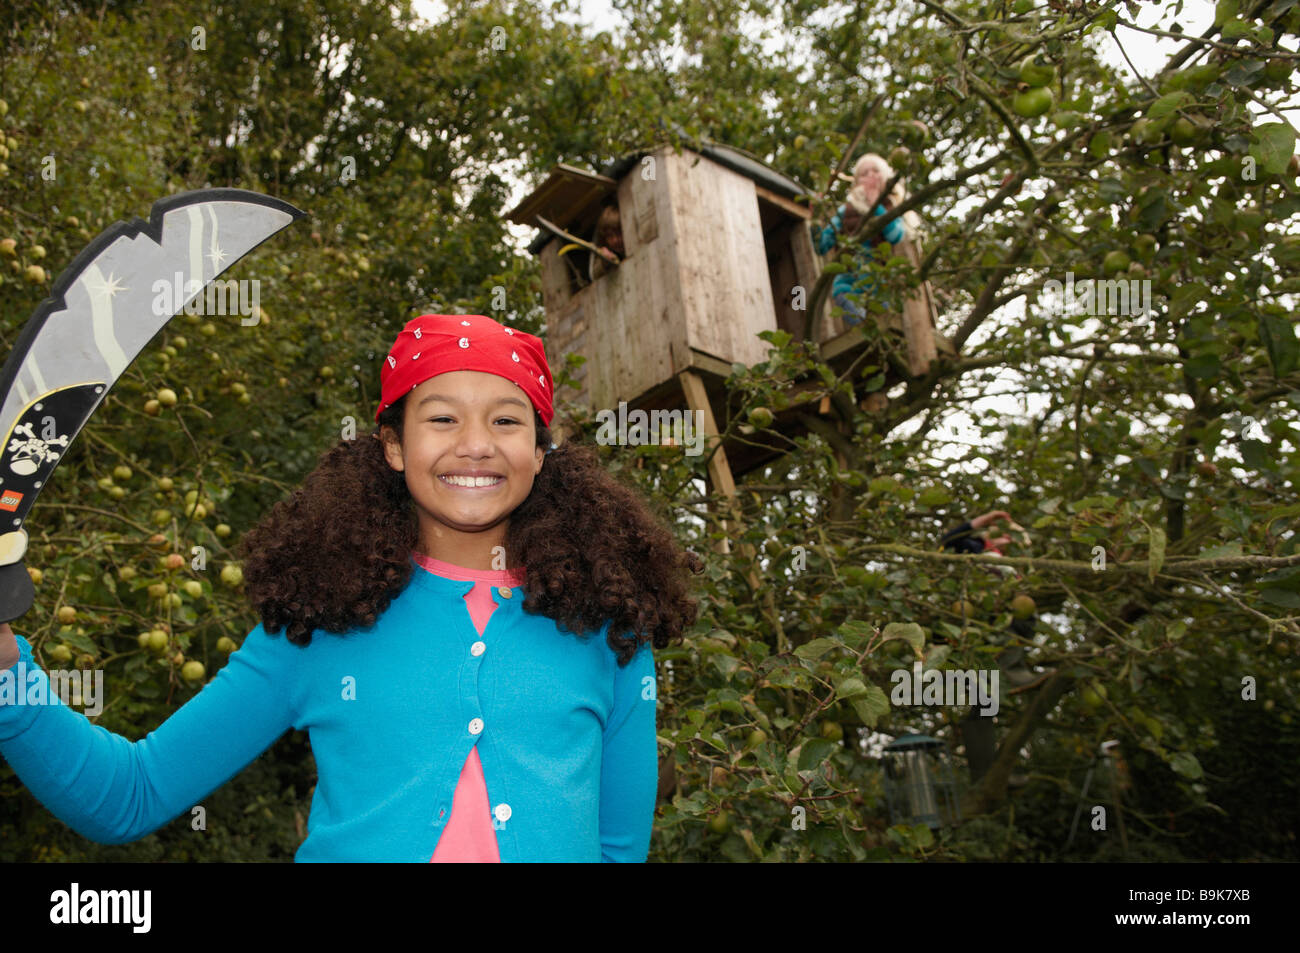 Children playing in treehouse - Stock Image